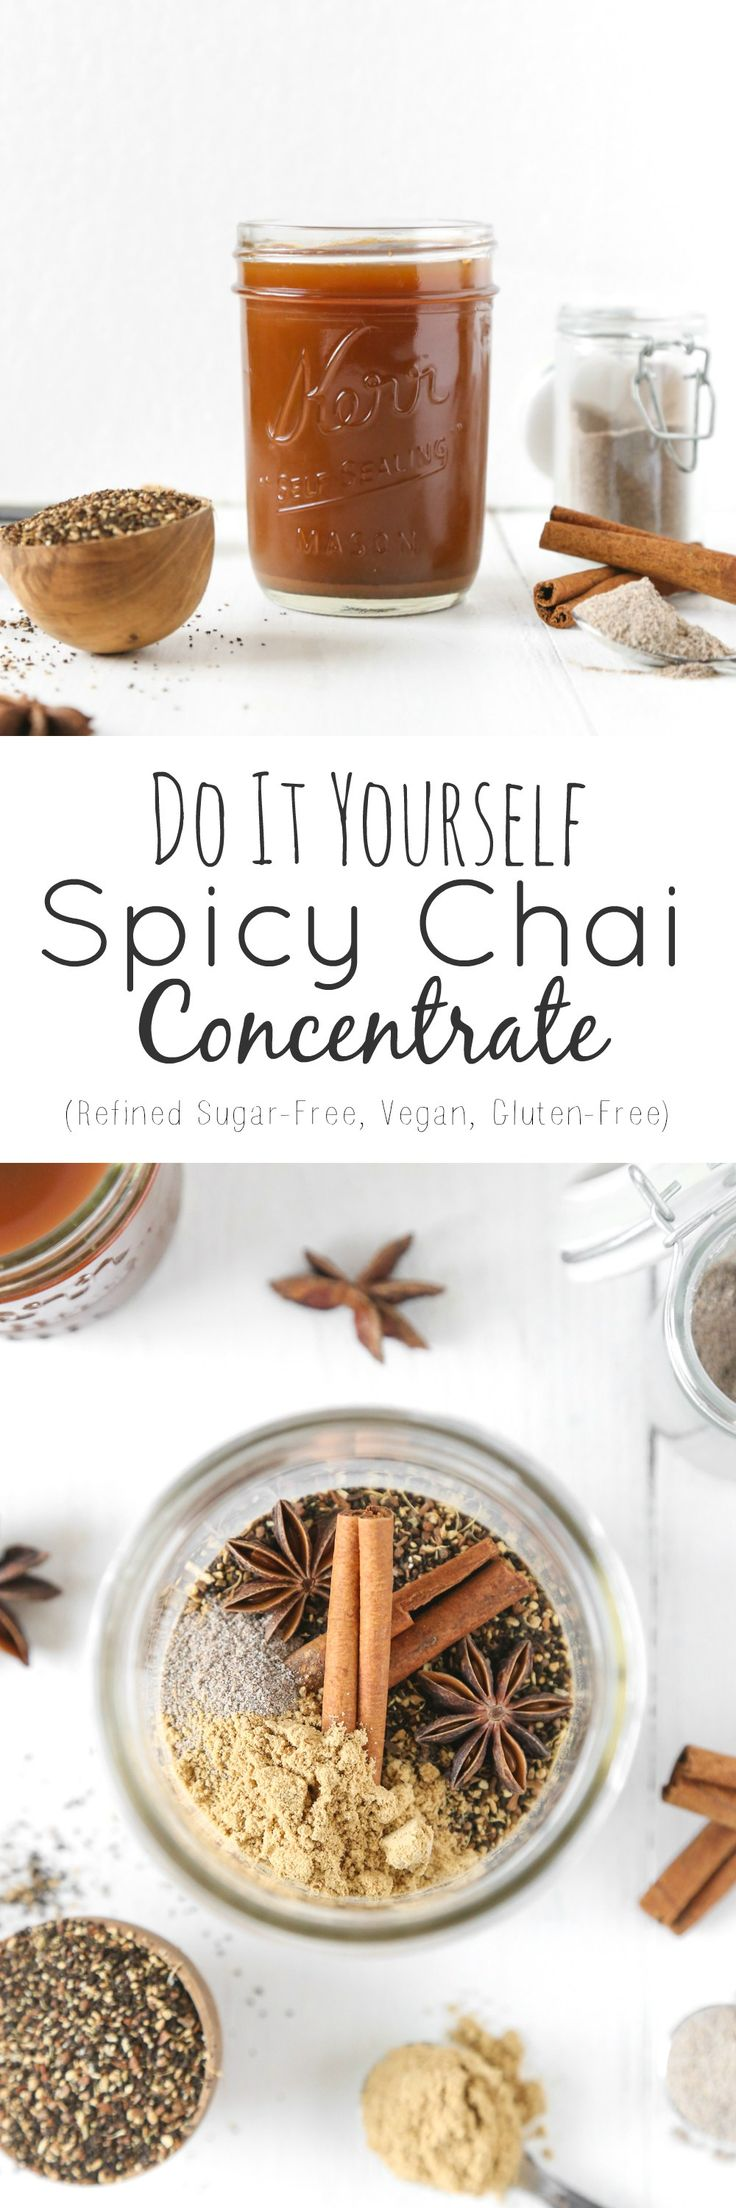 DIY Spicy Chai Concentrate (8 Ingredients!) | Vegan, Gluten-Free. Refined Sugar-Free | The Plant Philosophy